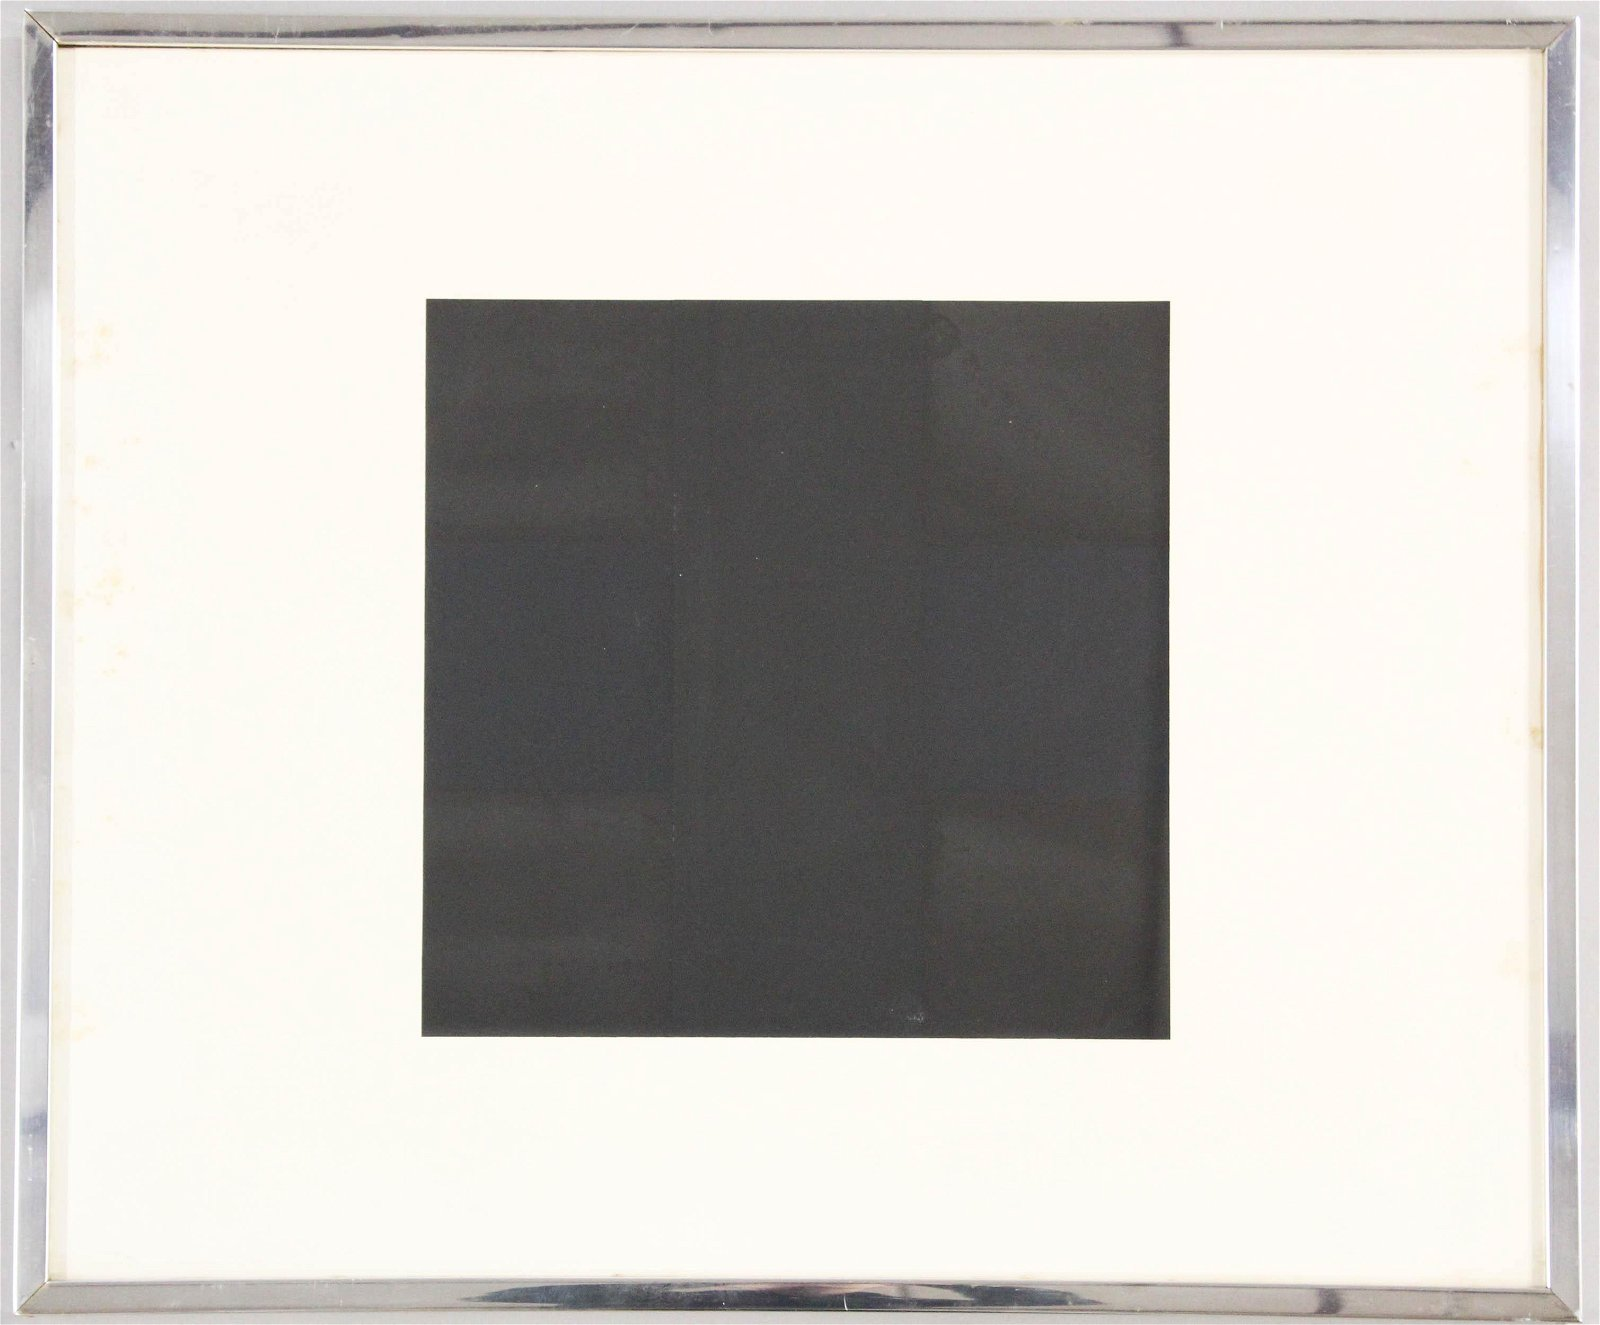 Ad Reinhardt (AM 1913-1967) Black Square